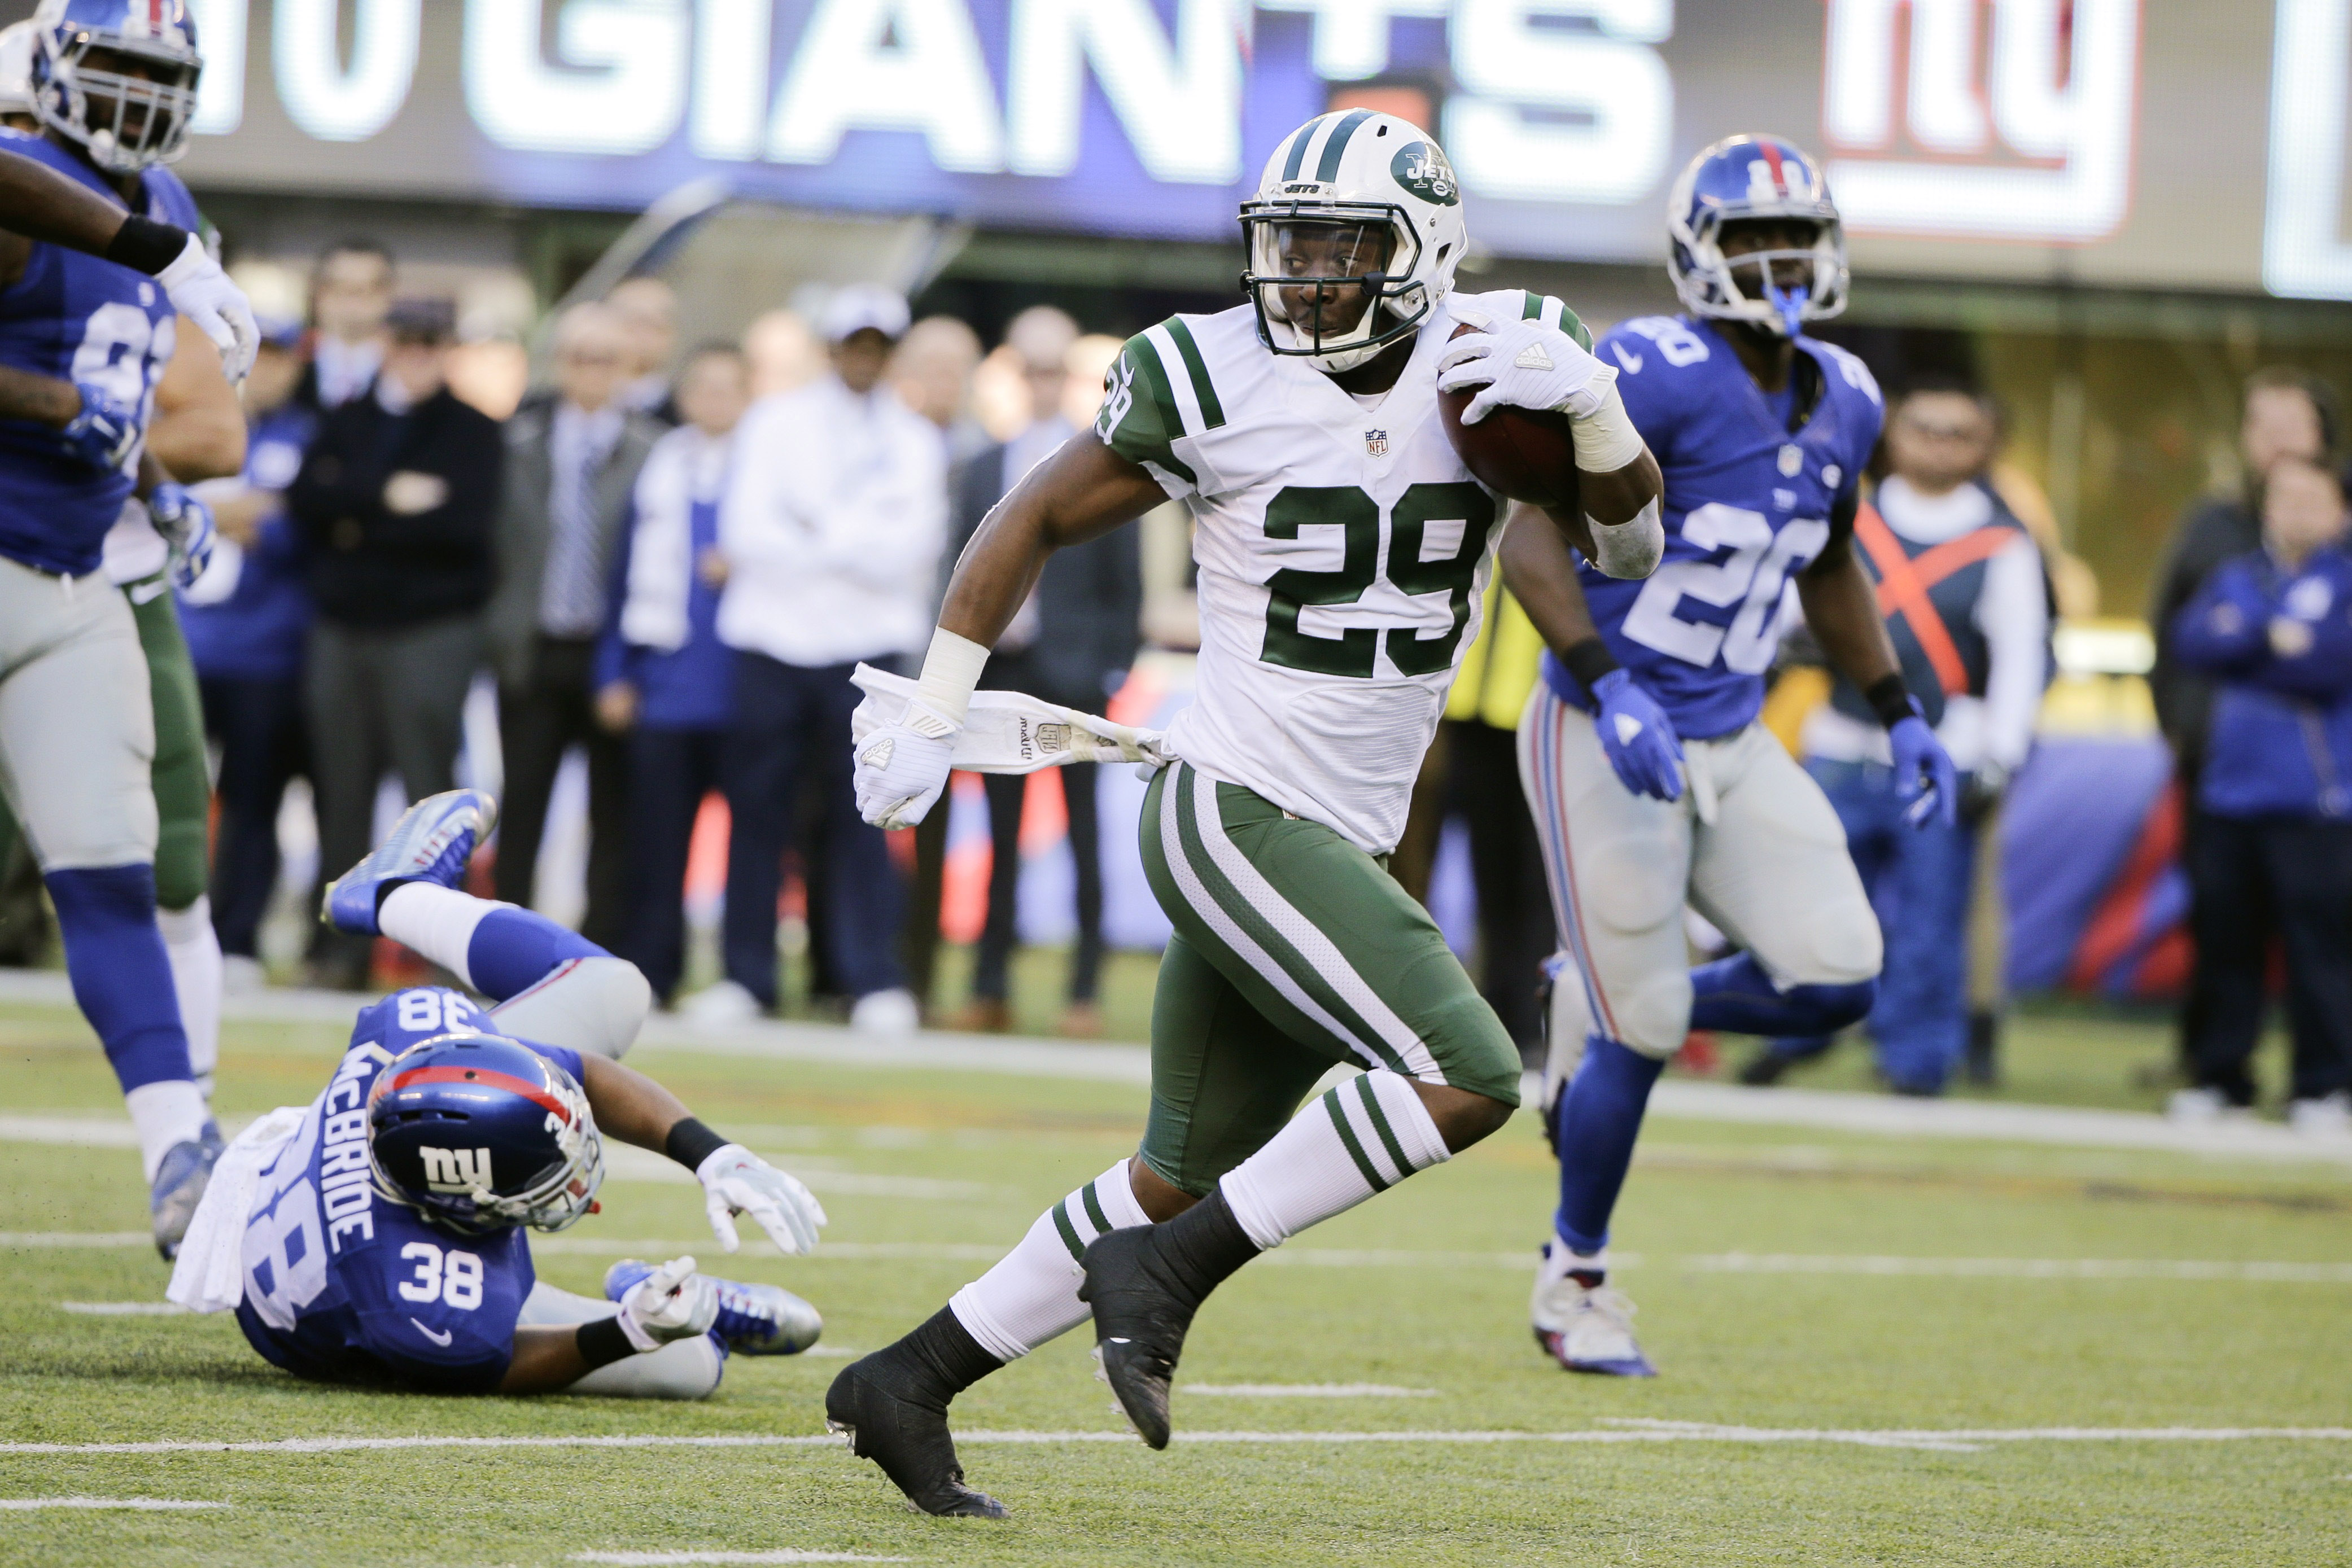 FILE - In this Dec. 6, 2015 file photo, New York Jets running back Bilal Powell (29) runs for a touchdown after catching a pass during the first half of an NFL football game against the New York Giants, in East Rutherford, N.J. Powell speaks barely above